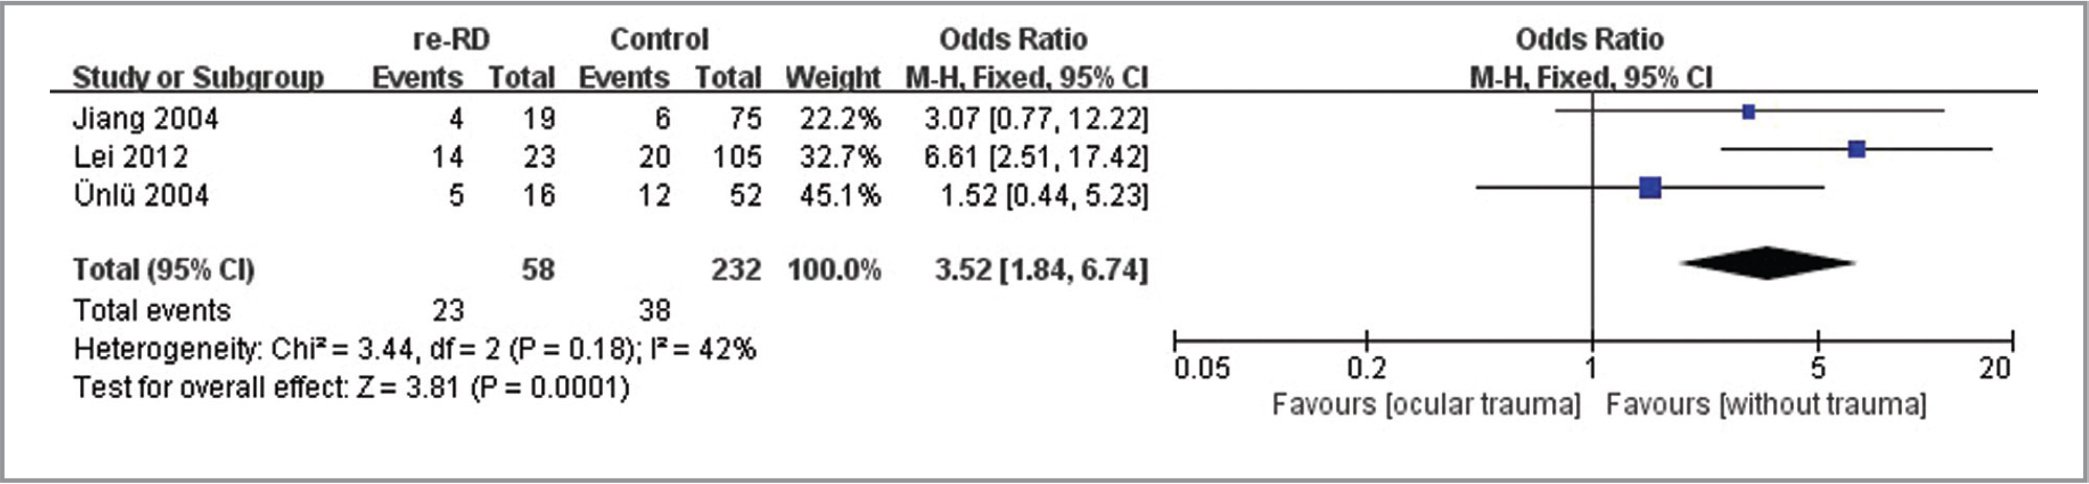 Unadjusted odds ratio and 95% confidence intervals (CIs) of ocular trauma (ocular trauma / without trauma) for retinal redetachment (re-RD) after silicone oil removal.